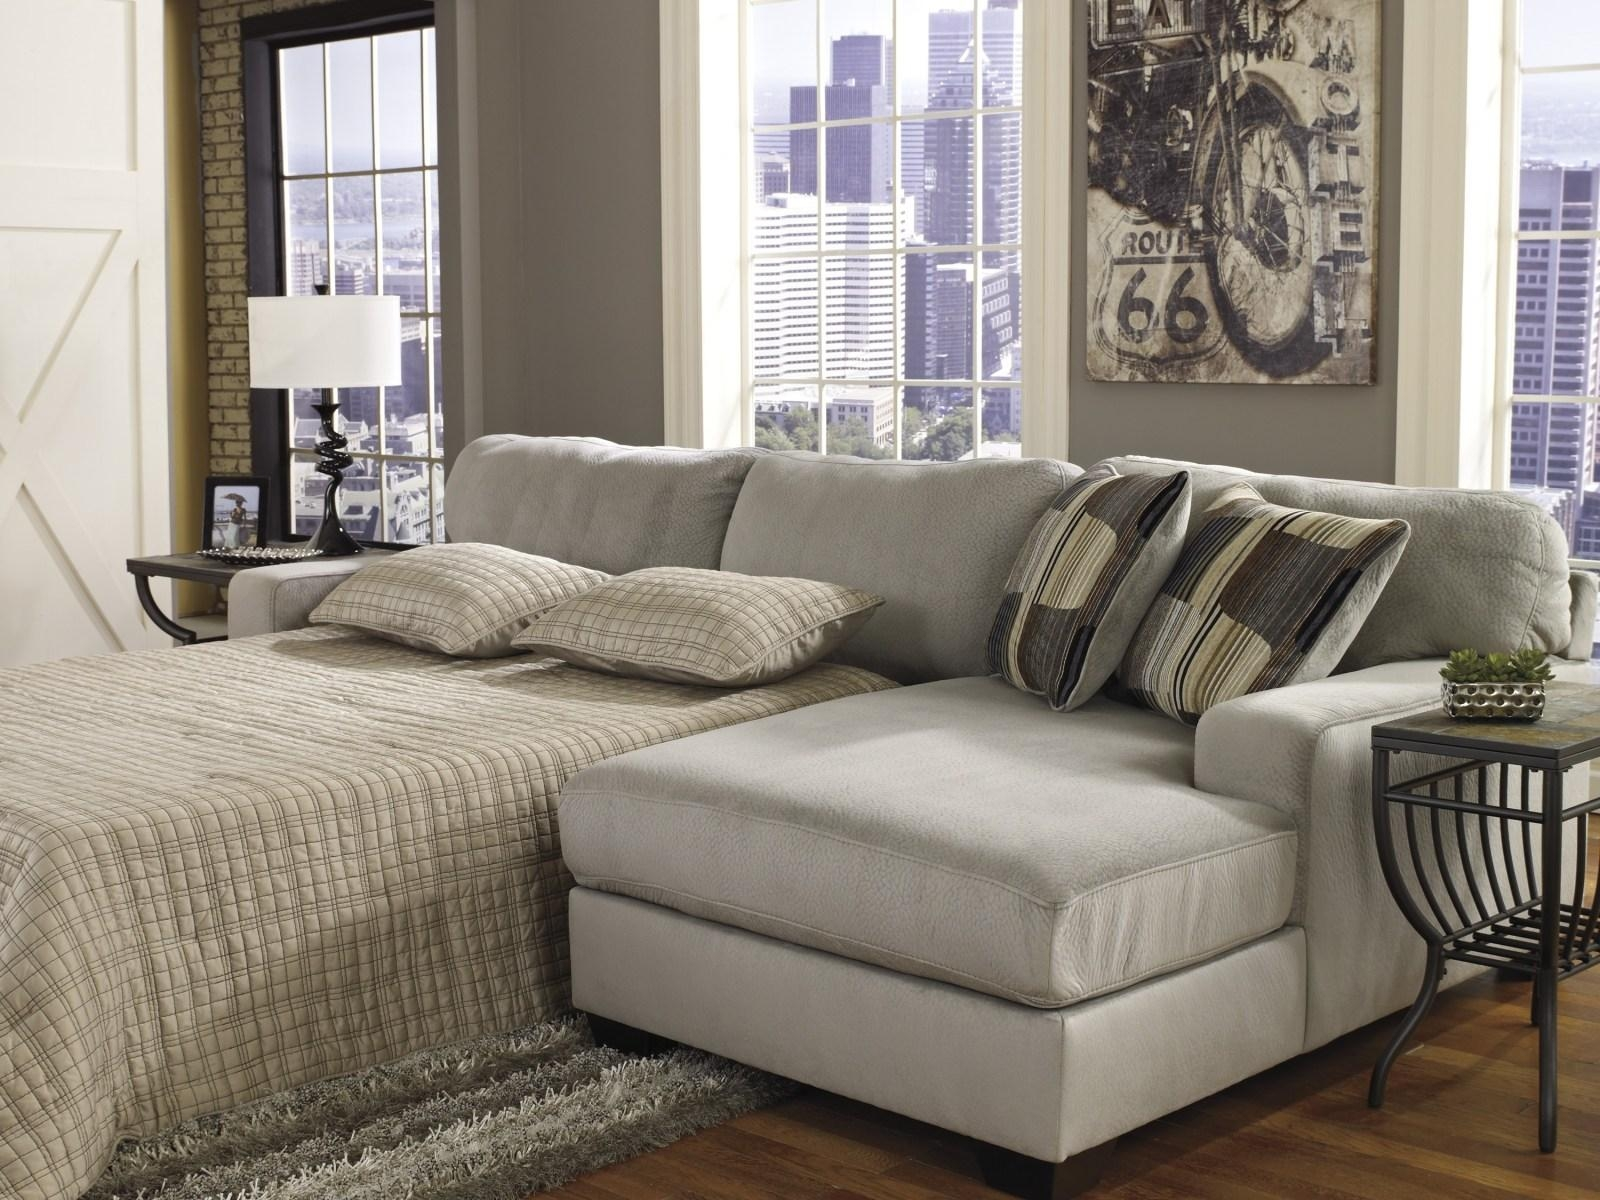 ▻ Sofa : 14 Wonderful Sectional Sofas For Small Rooms Images With Regard To Sectional Ideas For Small Rooms (View 9 of 20)